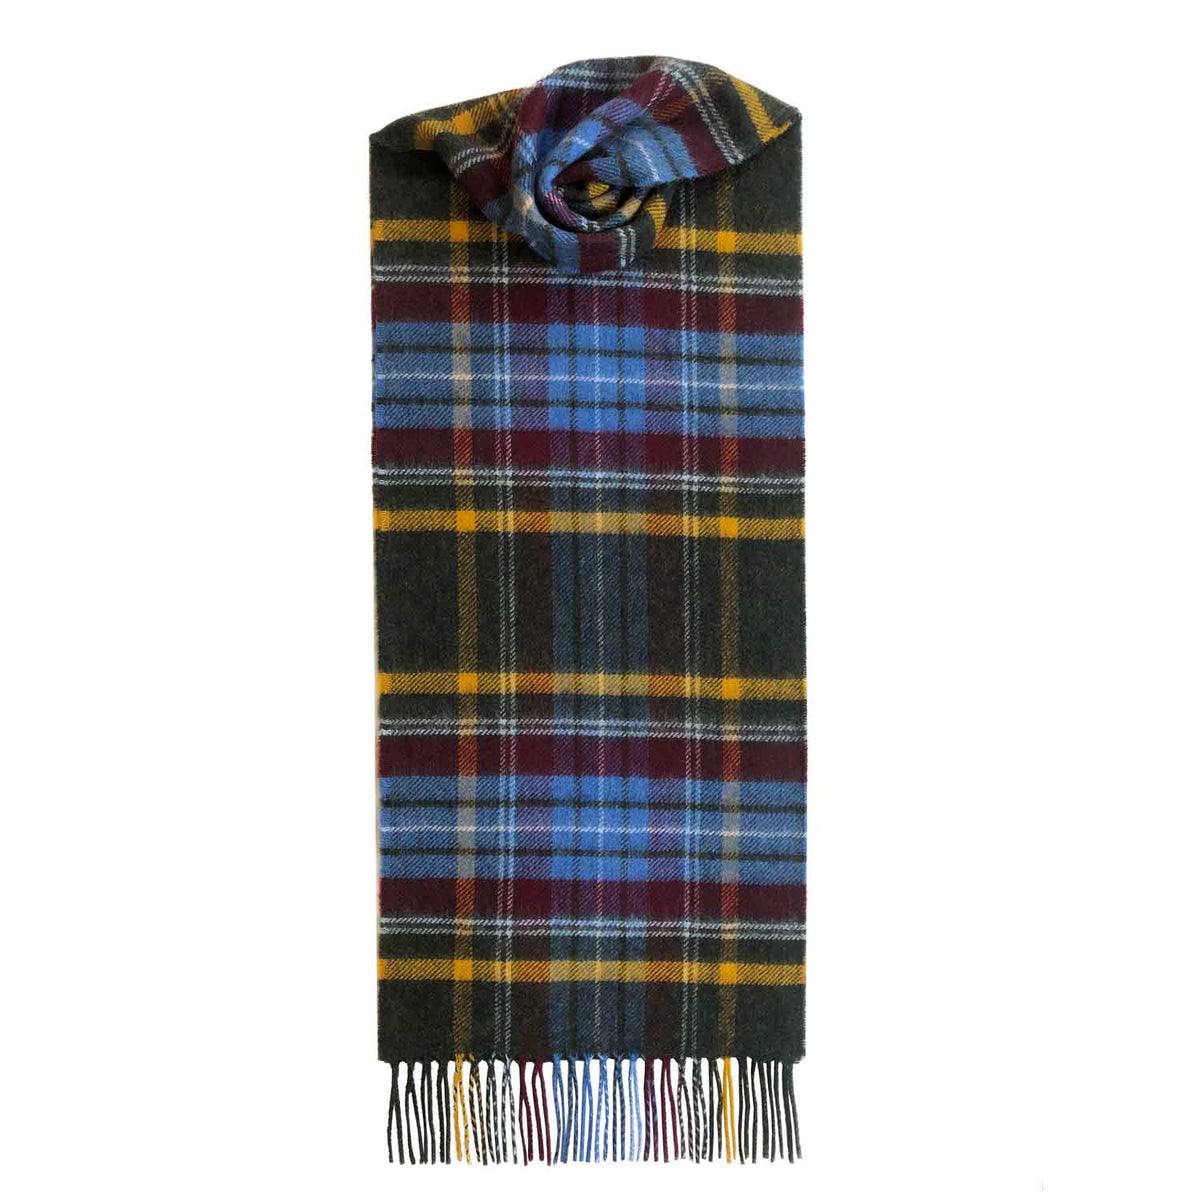 Lomond Cashmere | Brown Yellow | Check Cashmere Scarf With Fringes | Made in Scotland | Shop at The Cashmere Choice | London